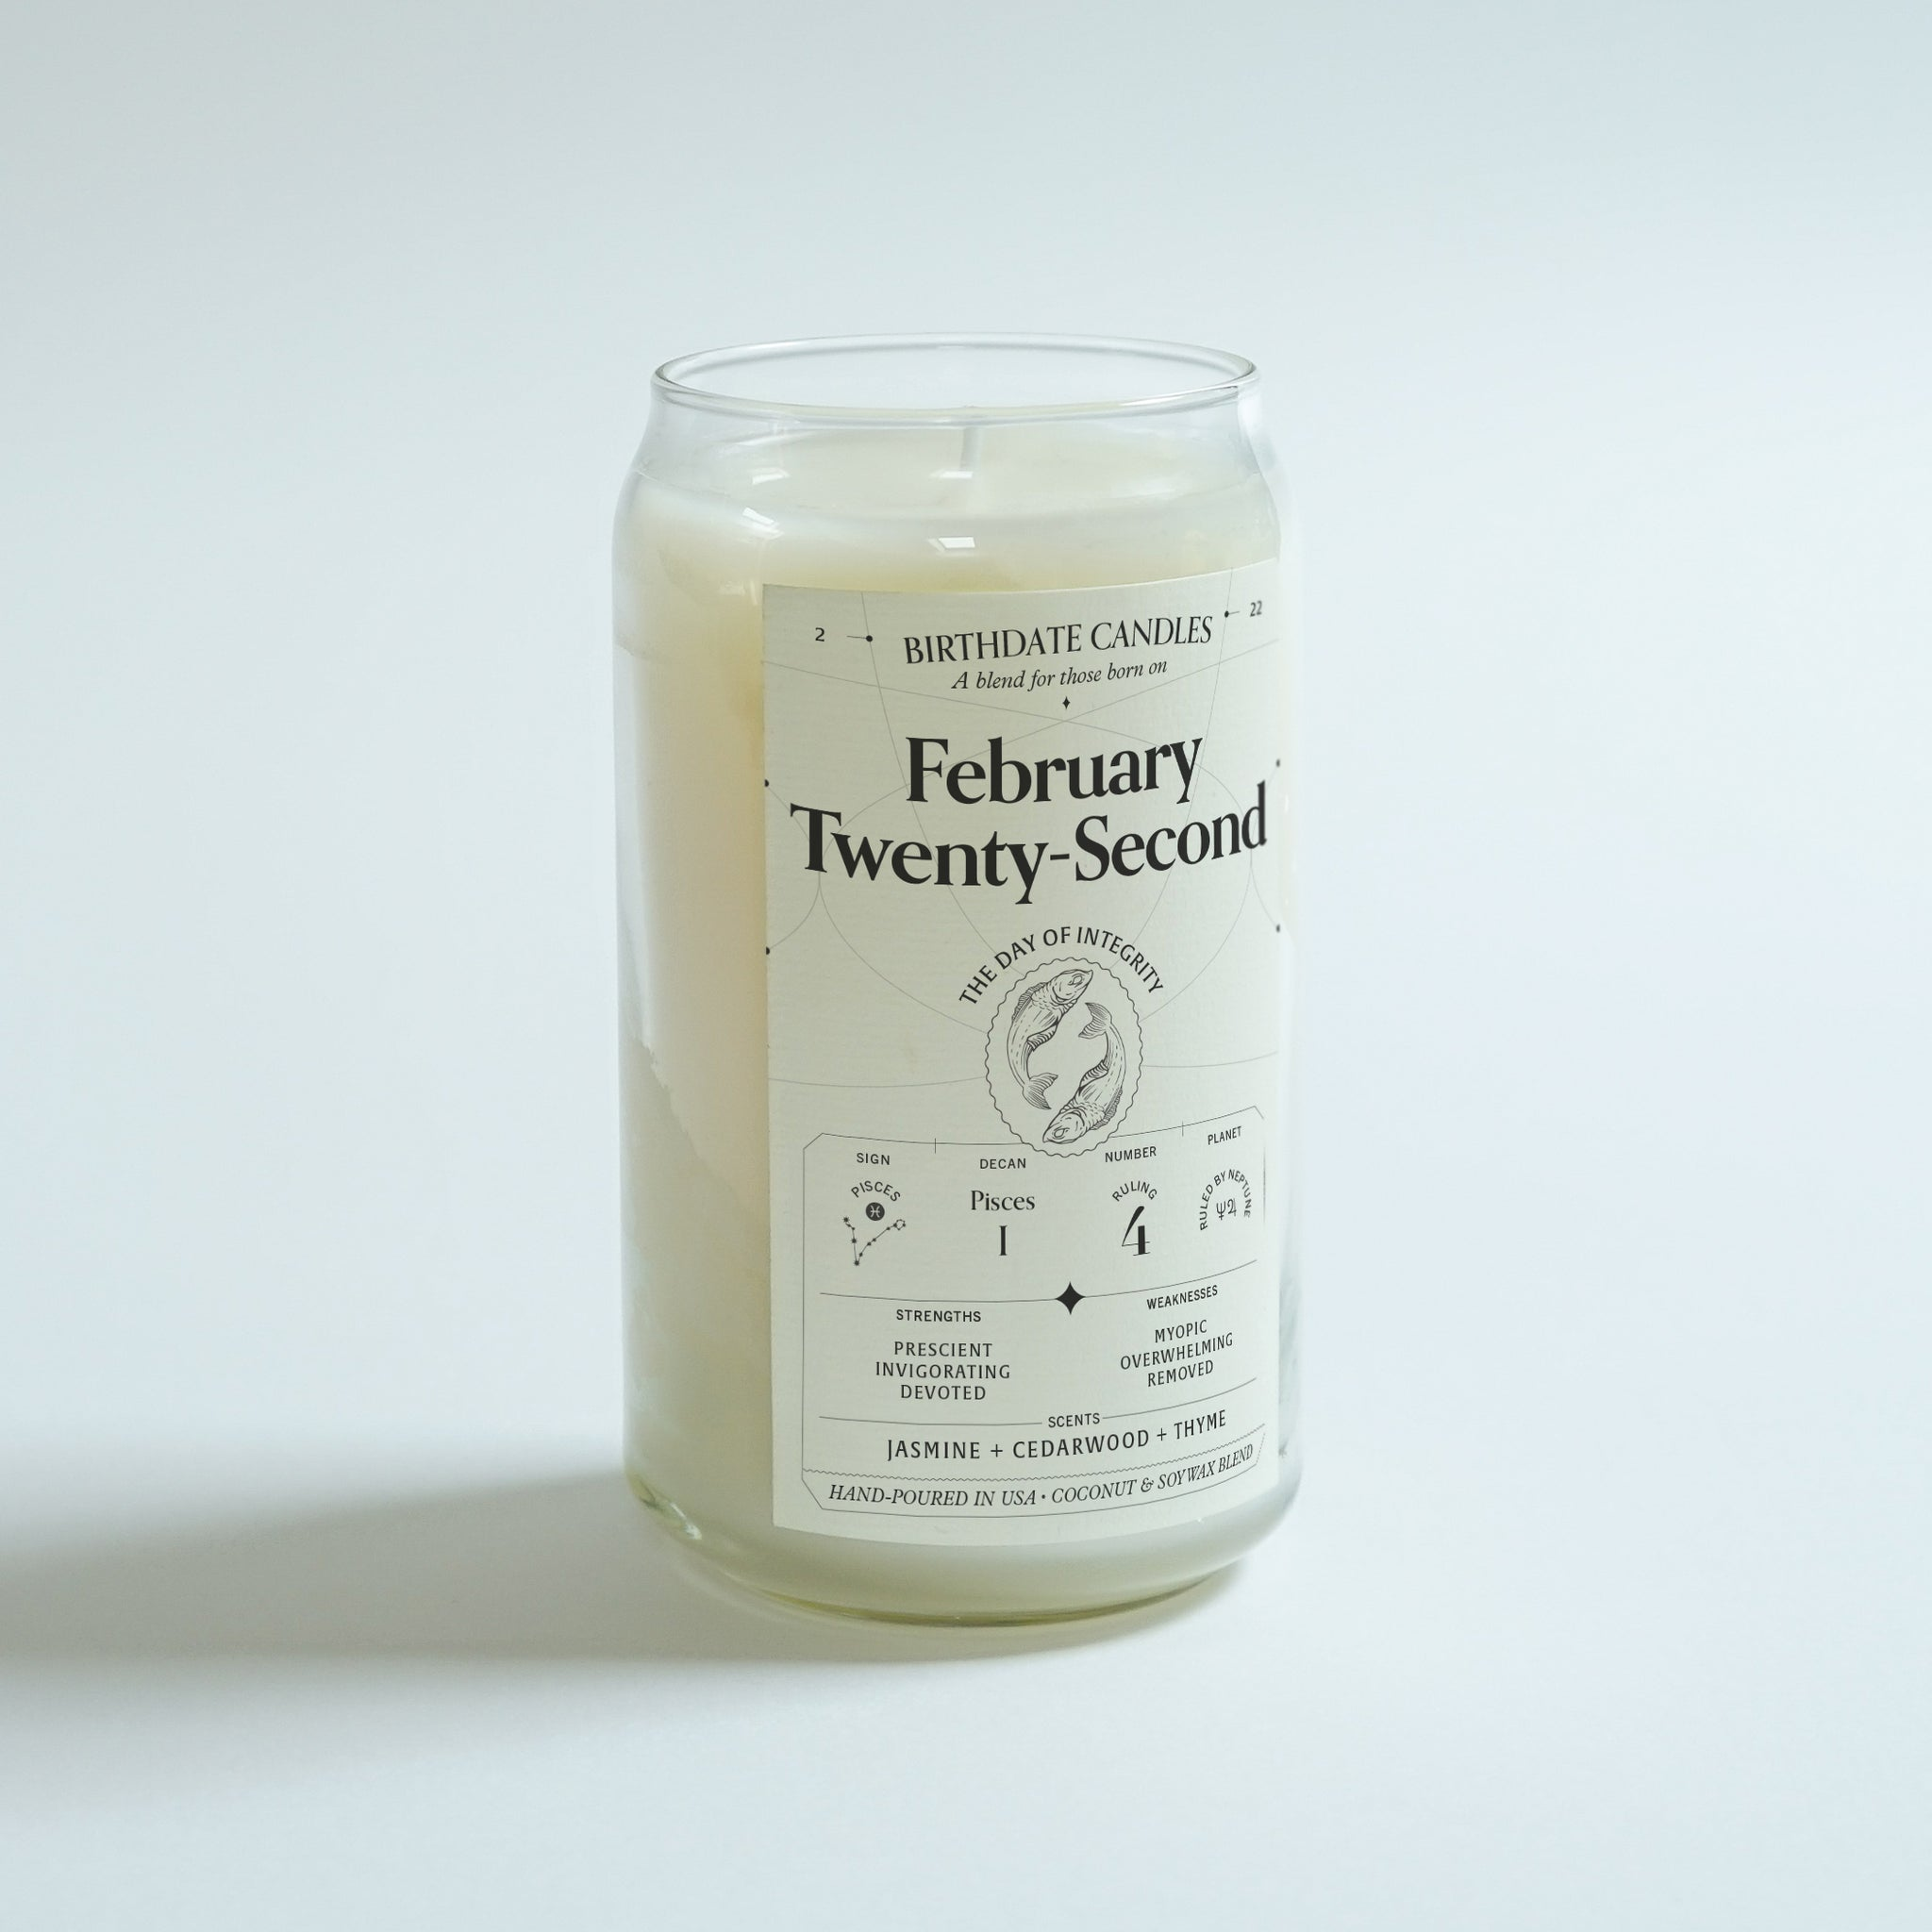 The February Twenty-Second Birthday Candle